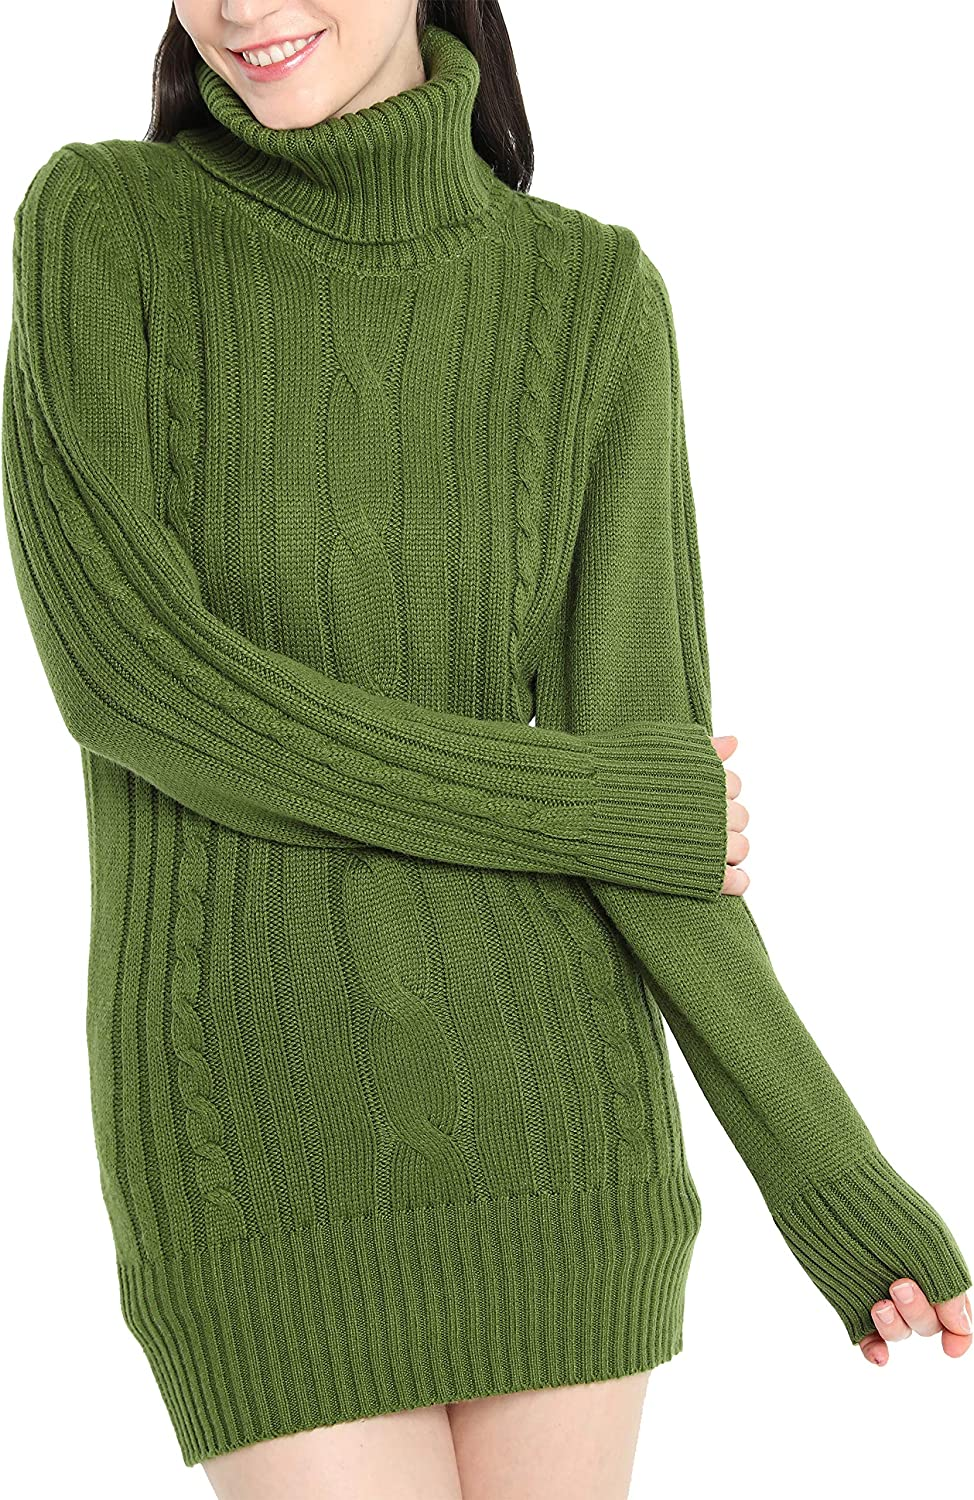 Liny Xin Women's Cashmere Knitted Turtleneck Long Sleeve Winter Wool Pullover Long Sweater Dresses Tops (M, Army Green)